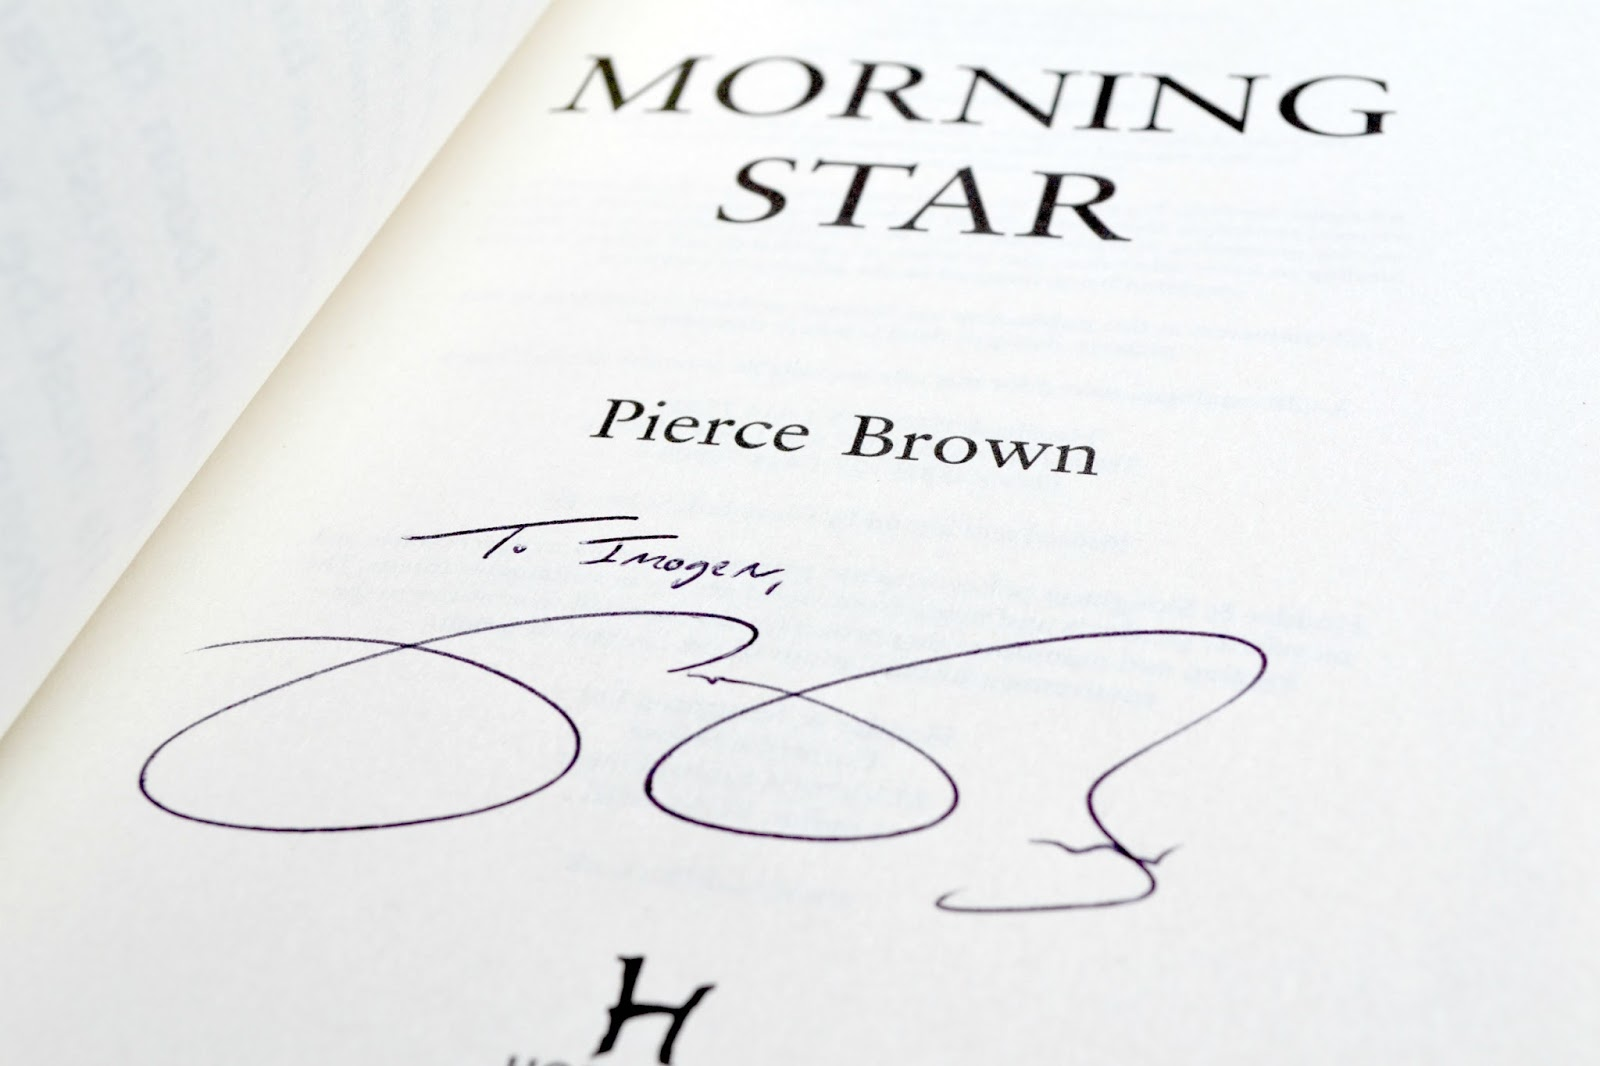 Pierce Brown autograph